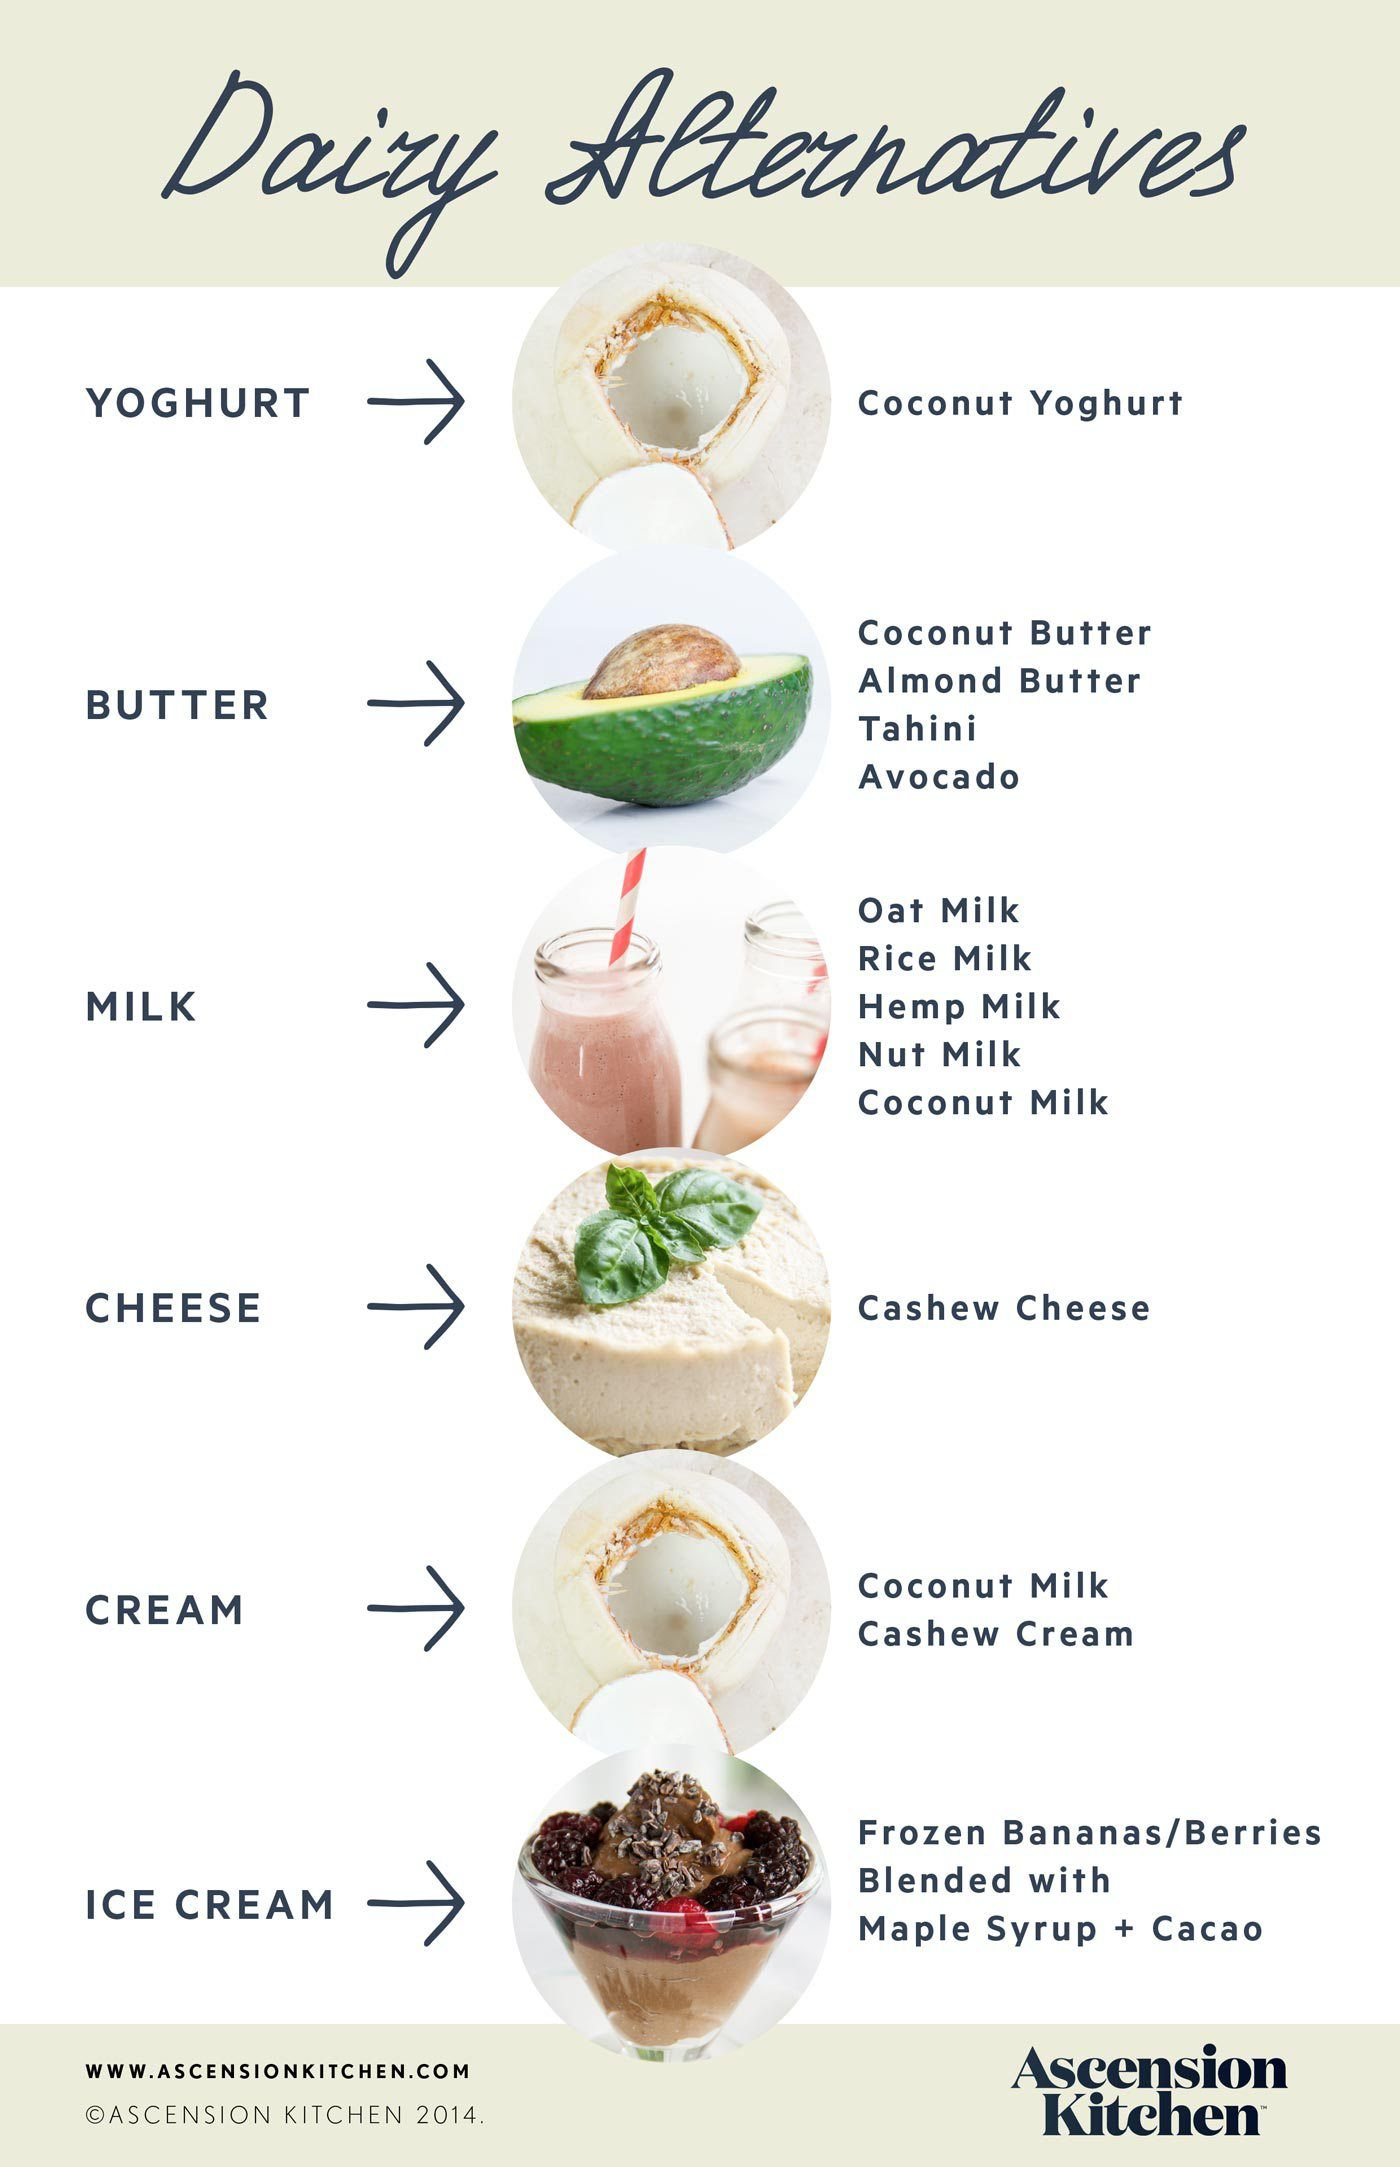 Dairy Alternatives With Images Dairy Free Diet Vegan Foods